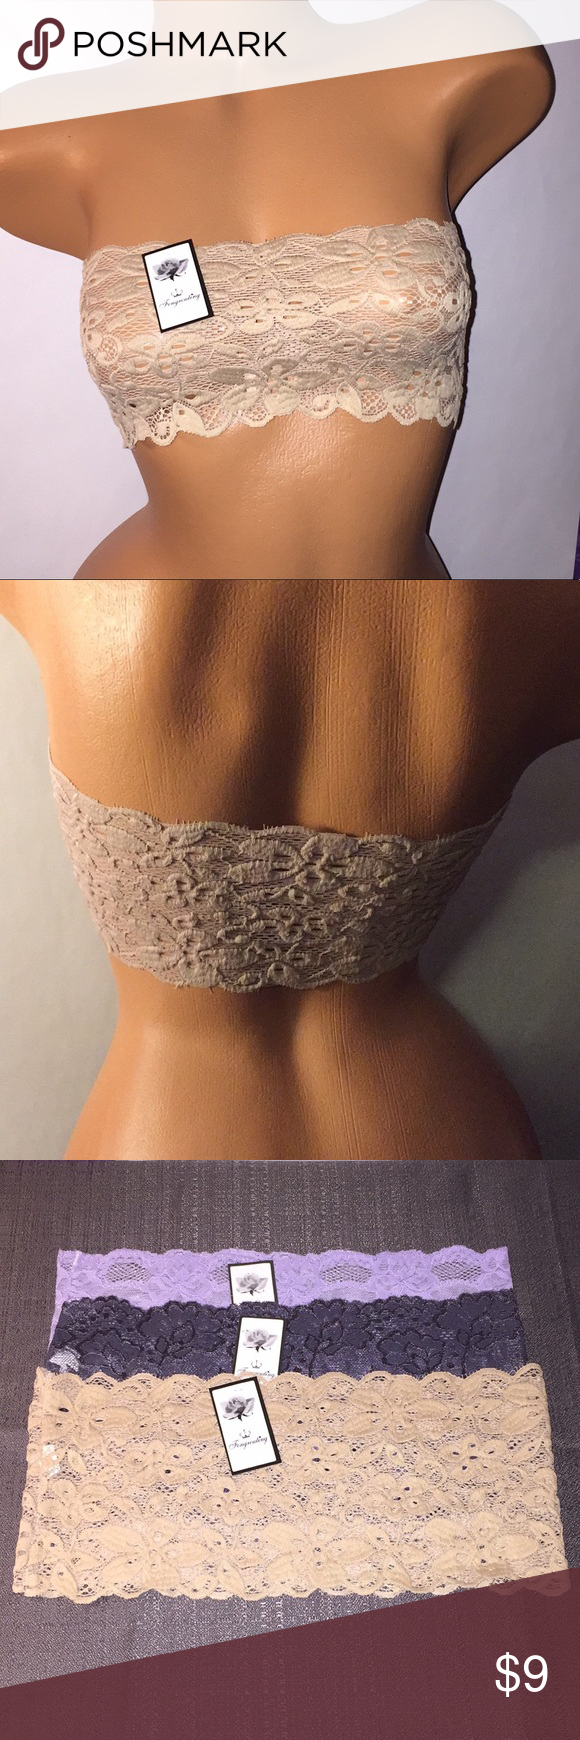 2bbaef1fe45 NWT 3 Lace Tube Tops Bandeau Stretch Strapless OS NWT 3 Lace Tube Tops  Bandeau Stretch